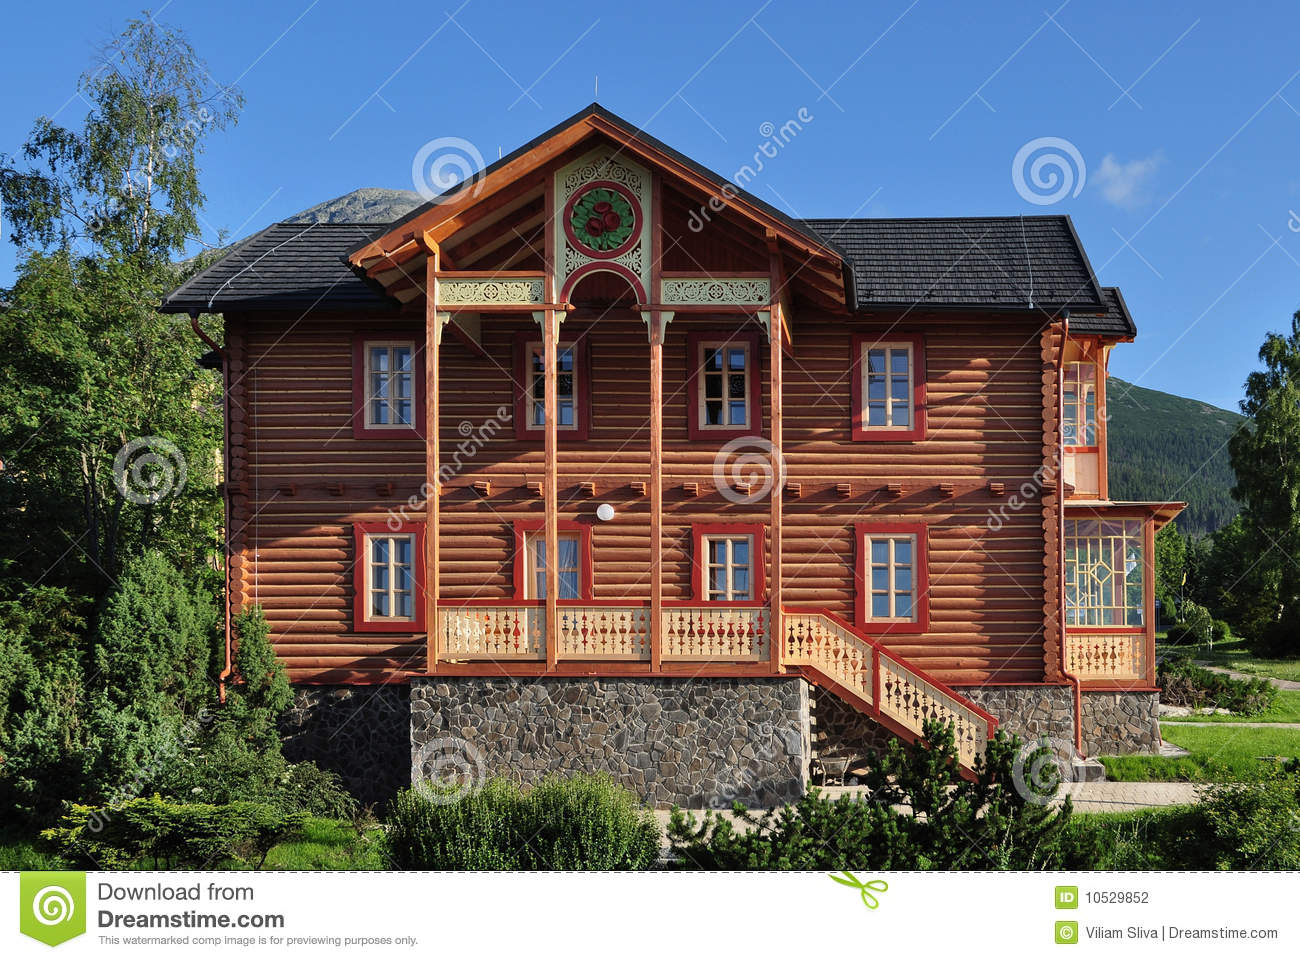 House of wood stock photography image 10529852 for Wood house images